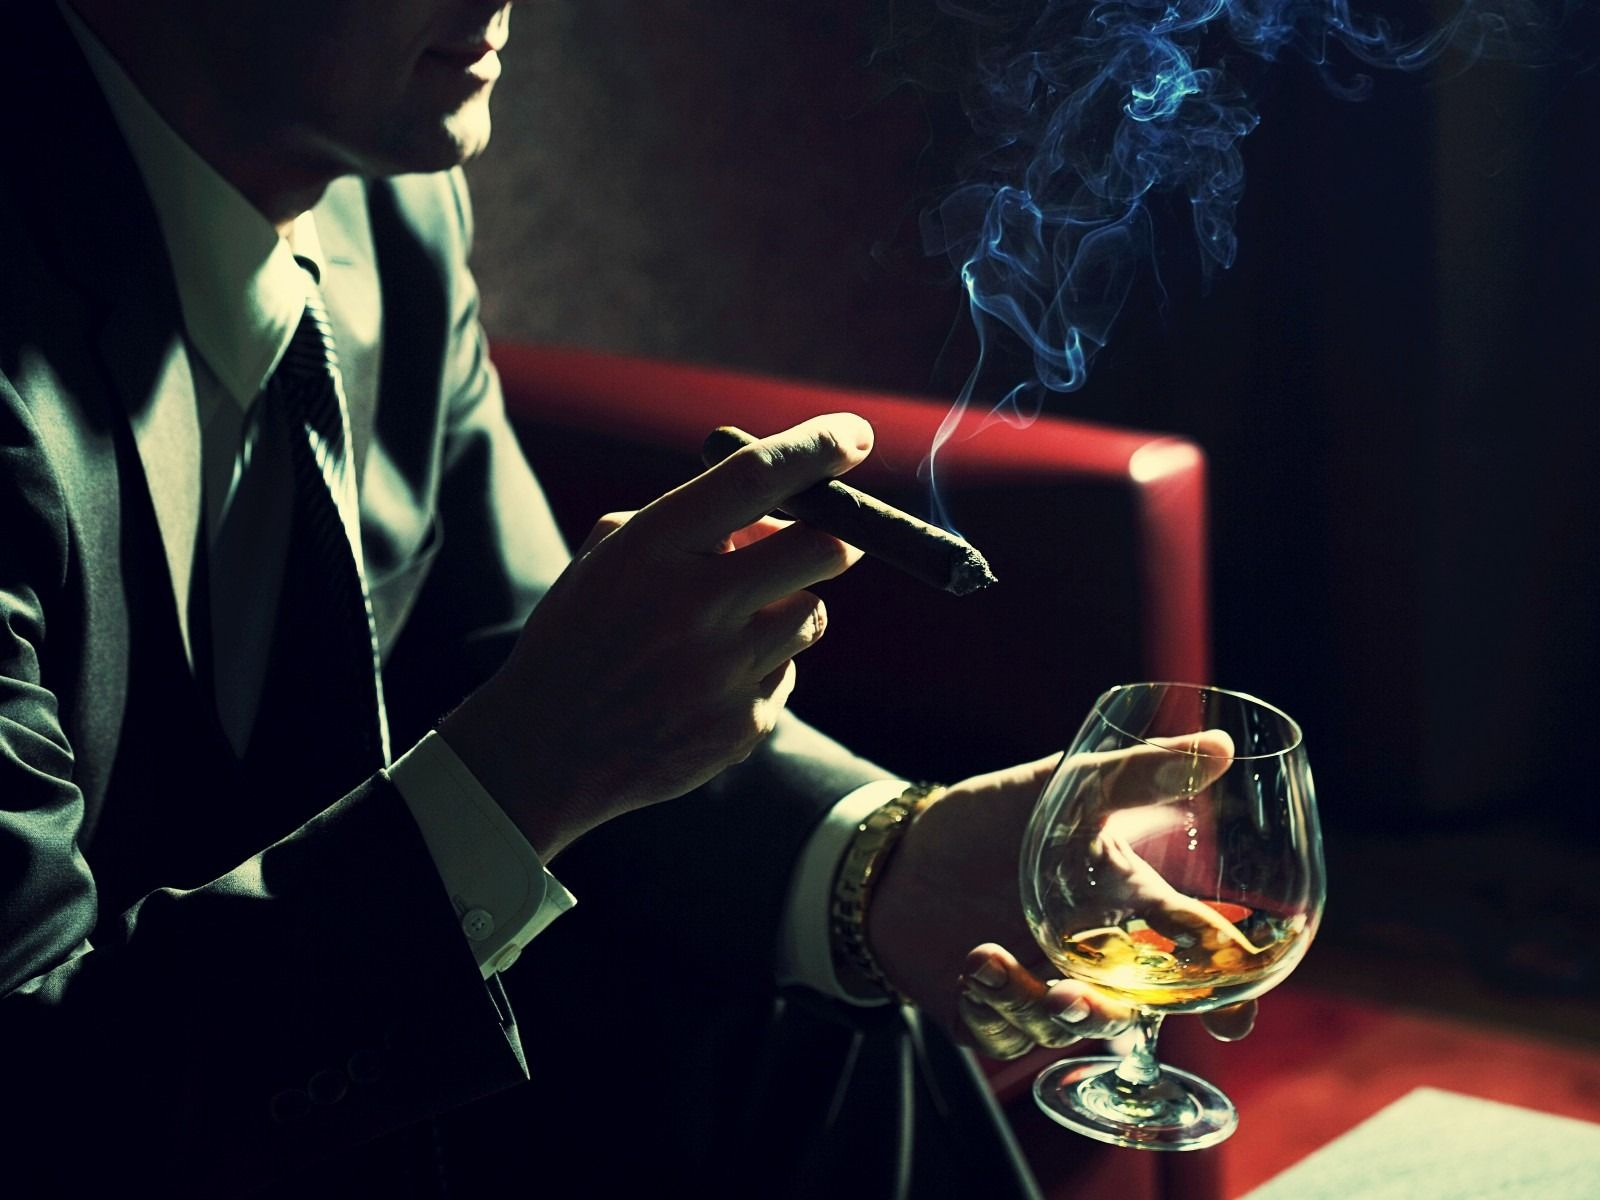 man smoking cigar and drinking cognac 1600x1200 wallpaper #drinking